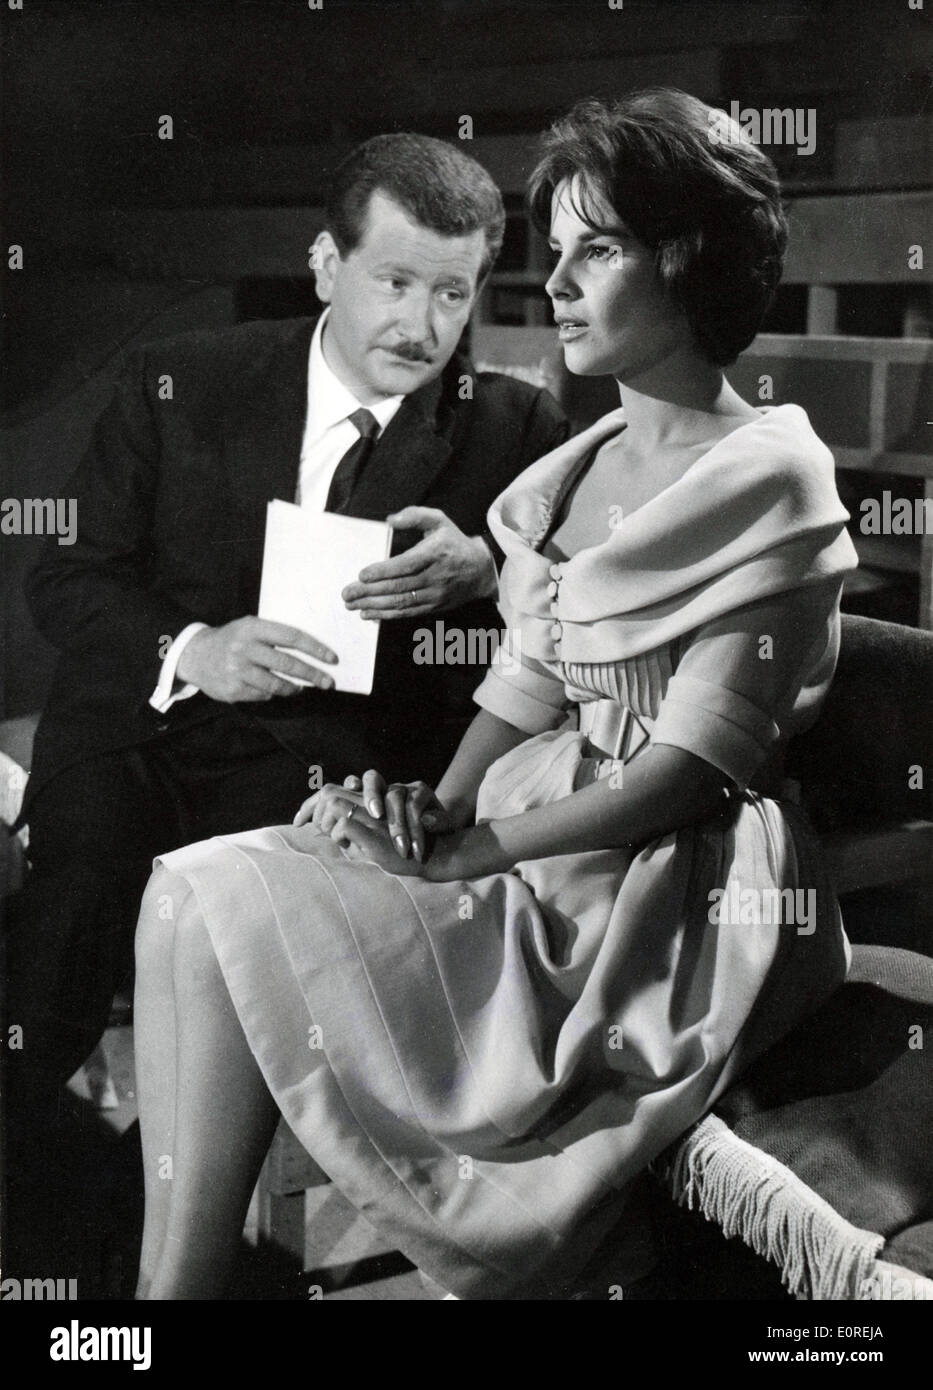 May 11, 1959 - Paris, France - Actress ANTONELLA LUALDI acting with c-star PIERRE BELLEMARE in a scene from the film, 'Match Against Death,' which is director Claude Bernard Aubert's last film. - Stock Image